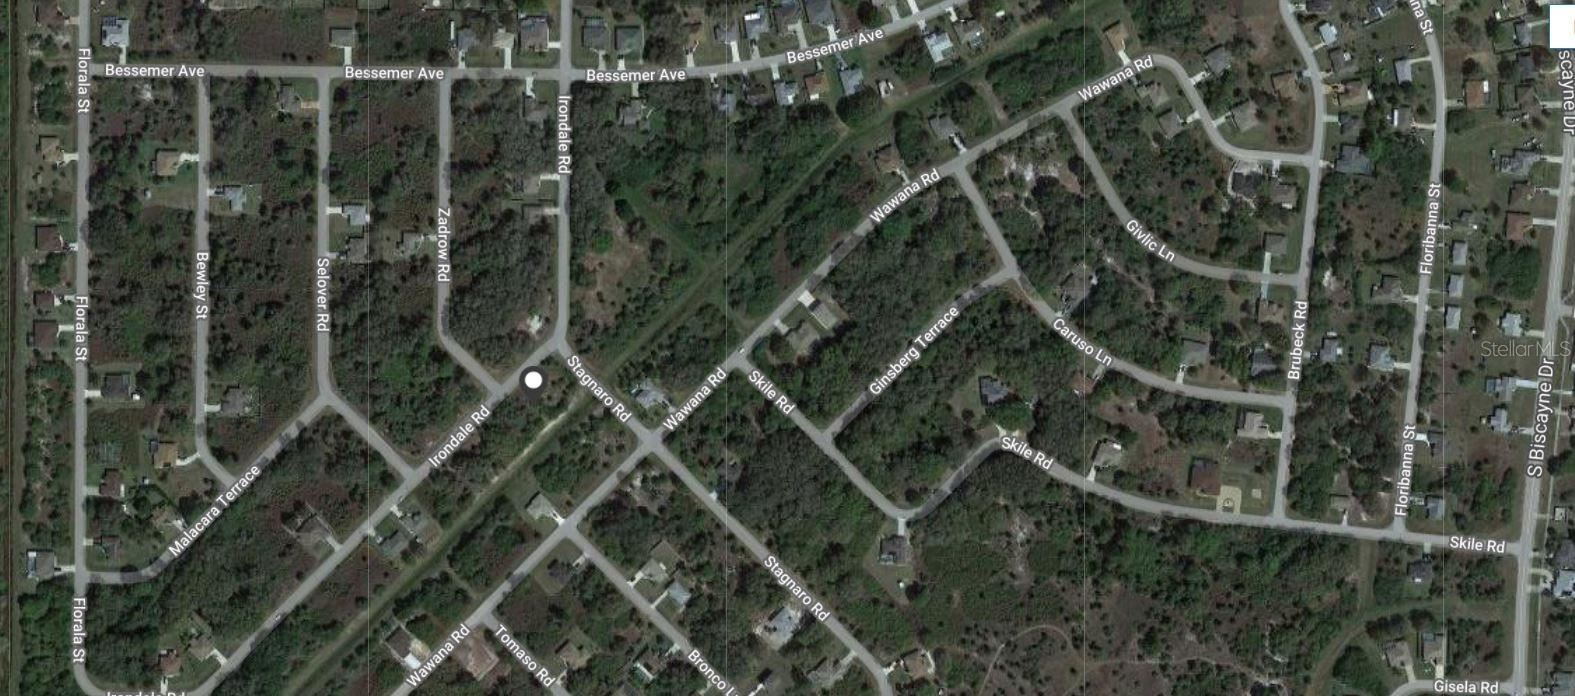 Photo of IRONDALE ROAD, NORTH PORT, FL 34287 (MLS # A4503200)